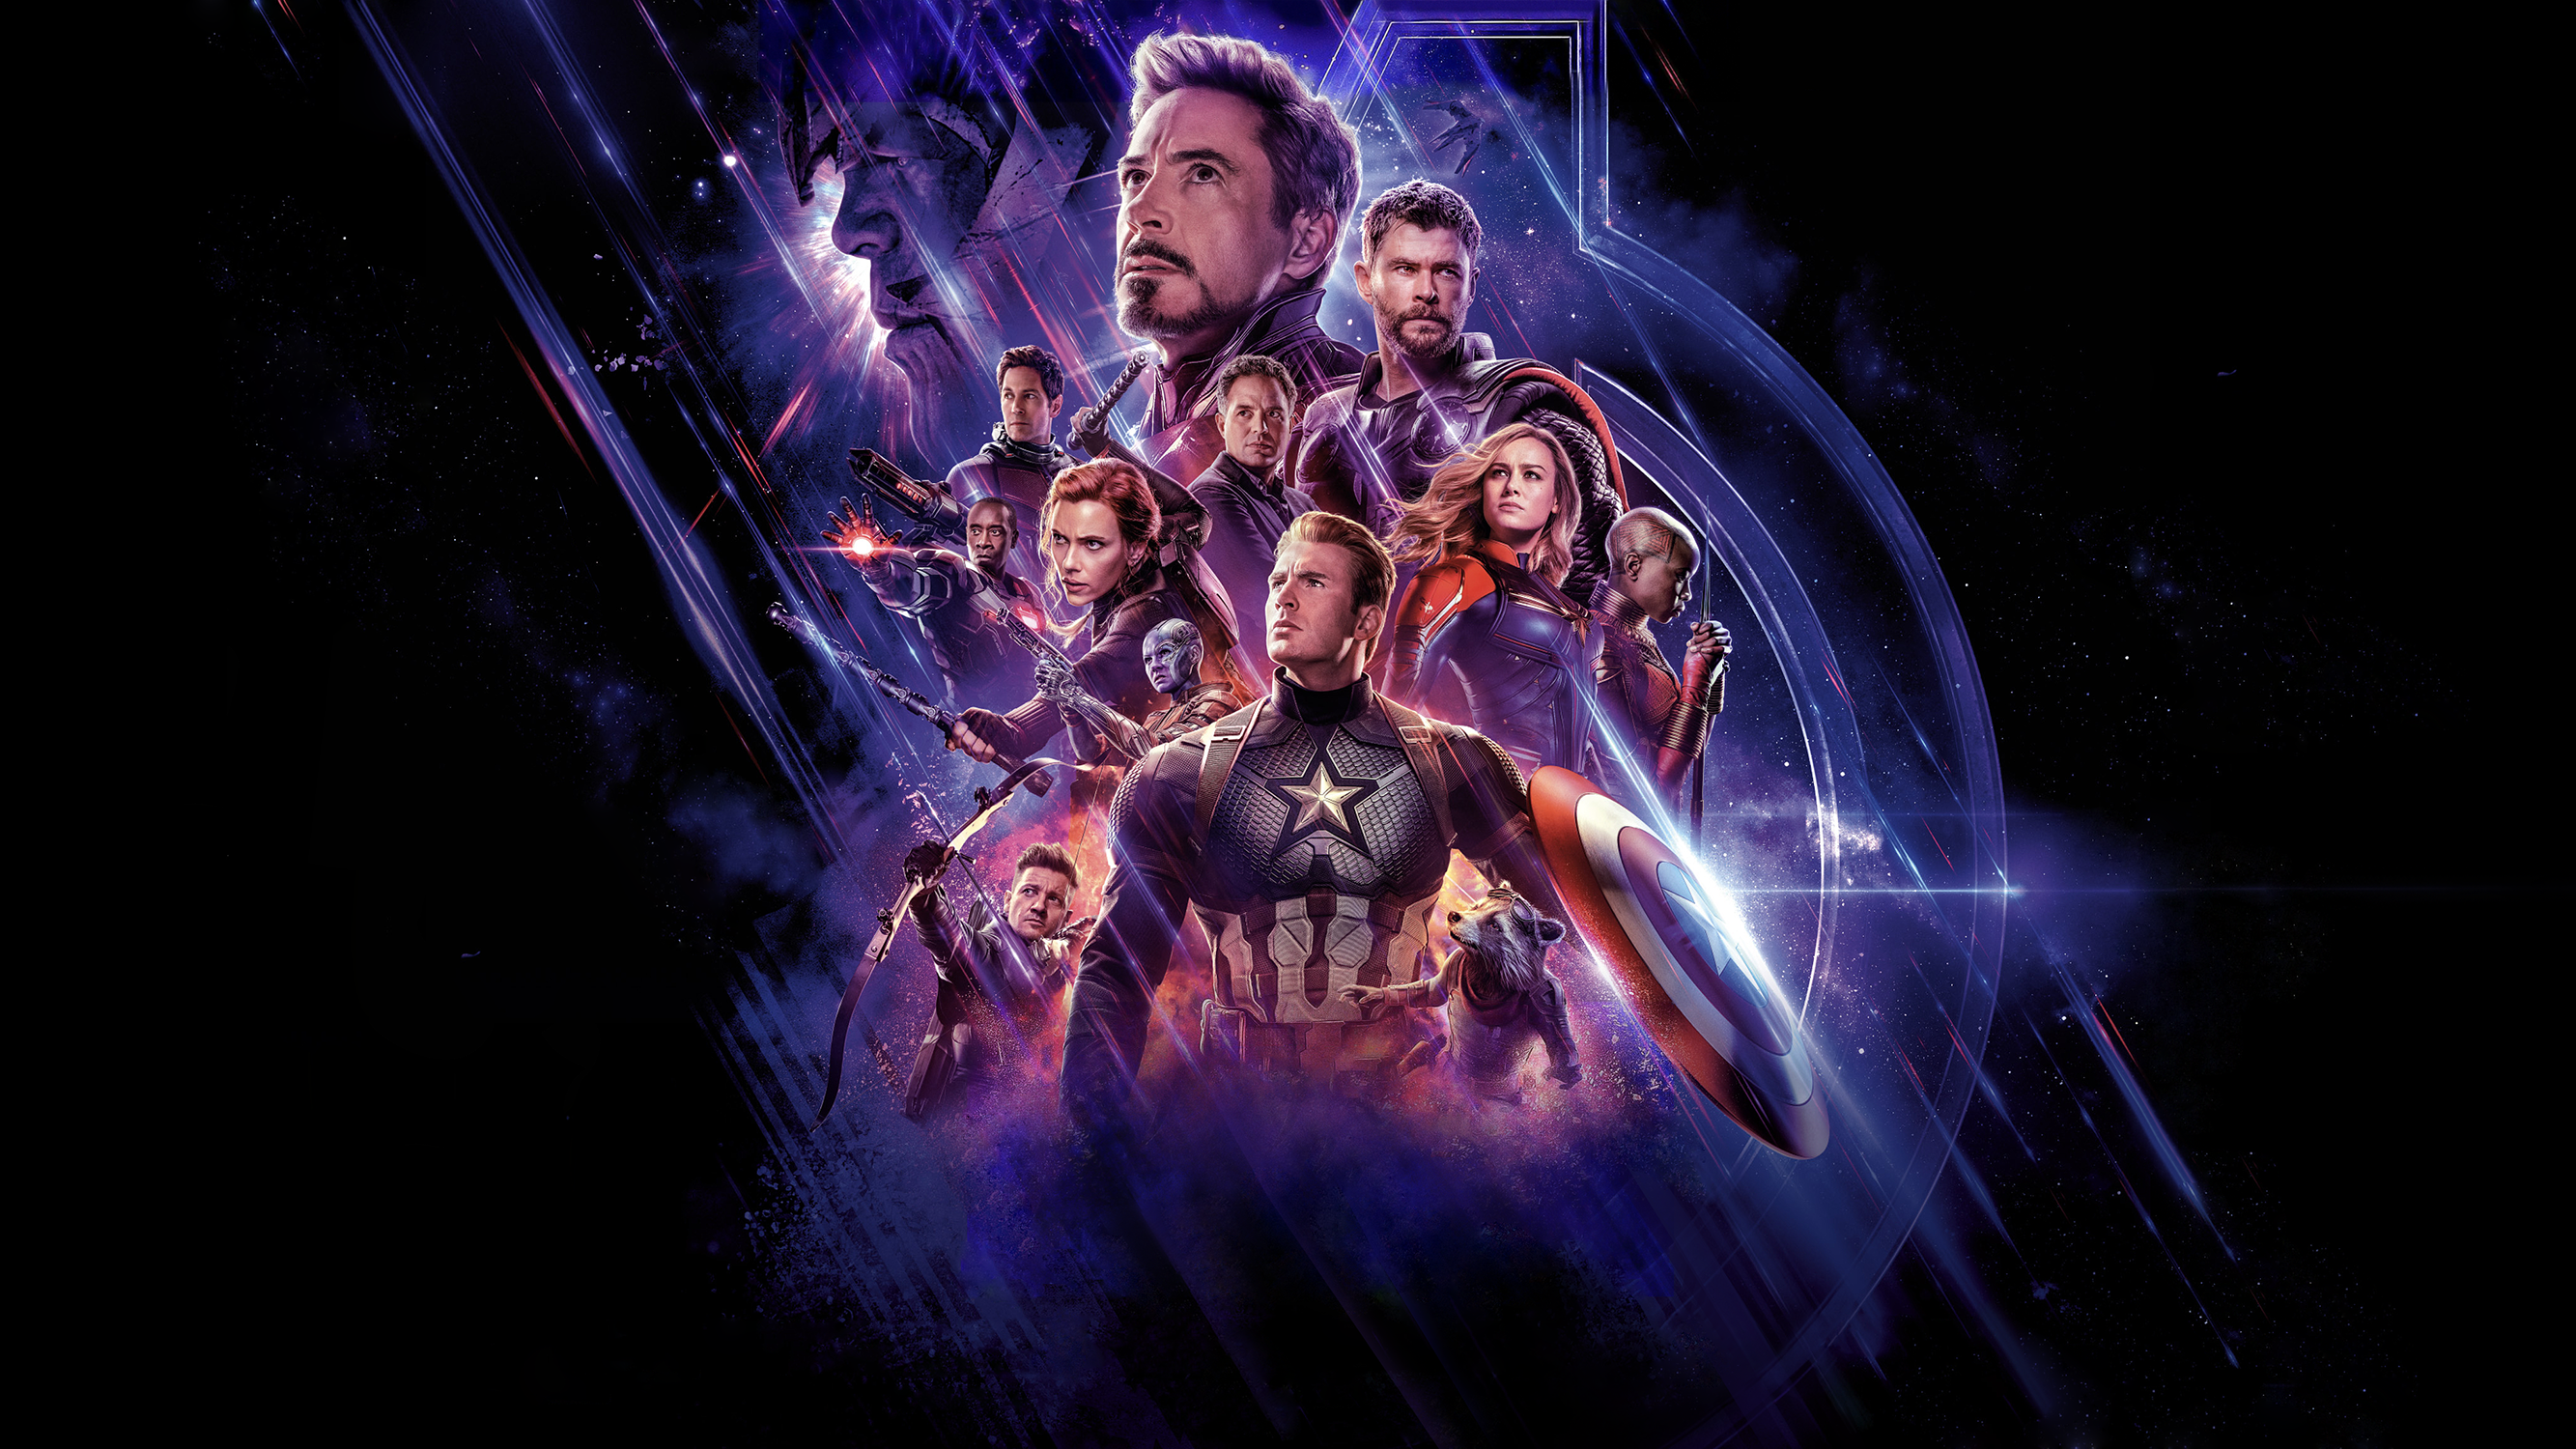 Avengers Endgame Hd Wallpapers Background Images Static